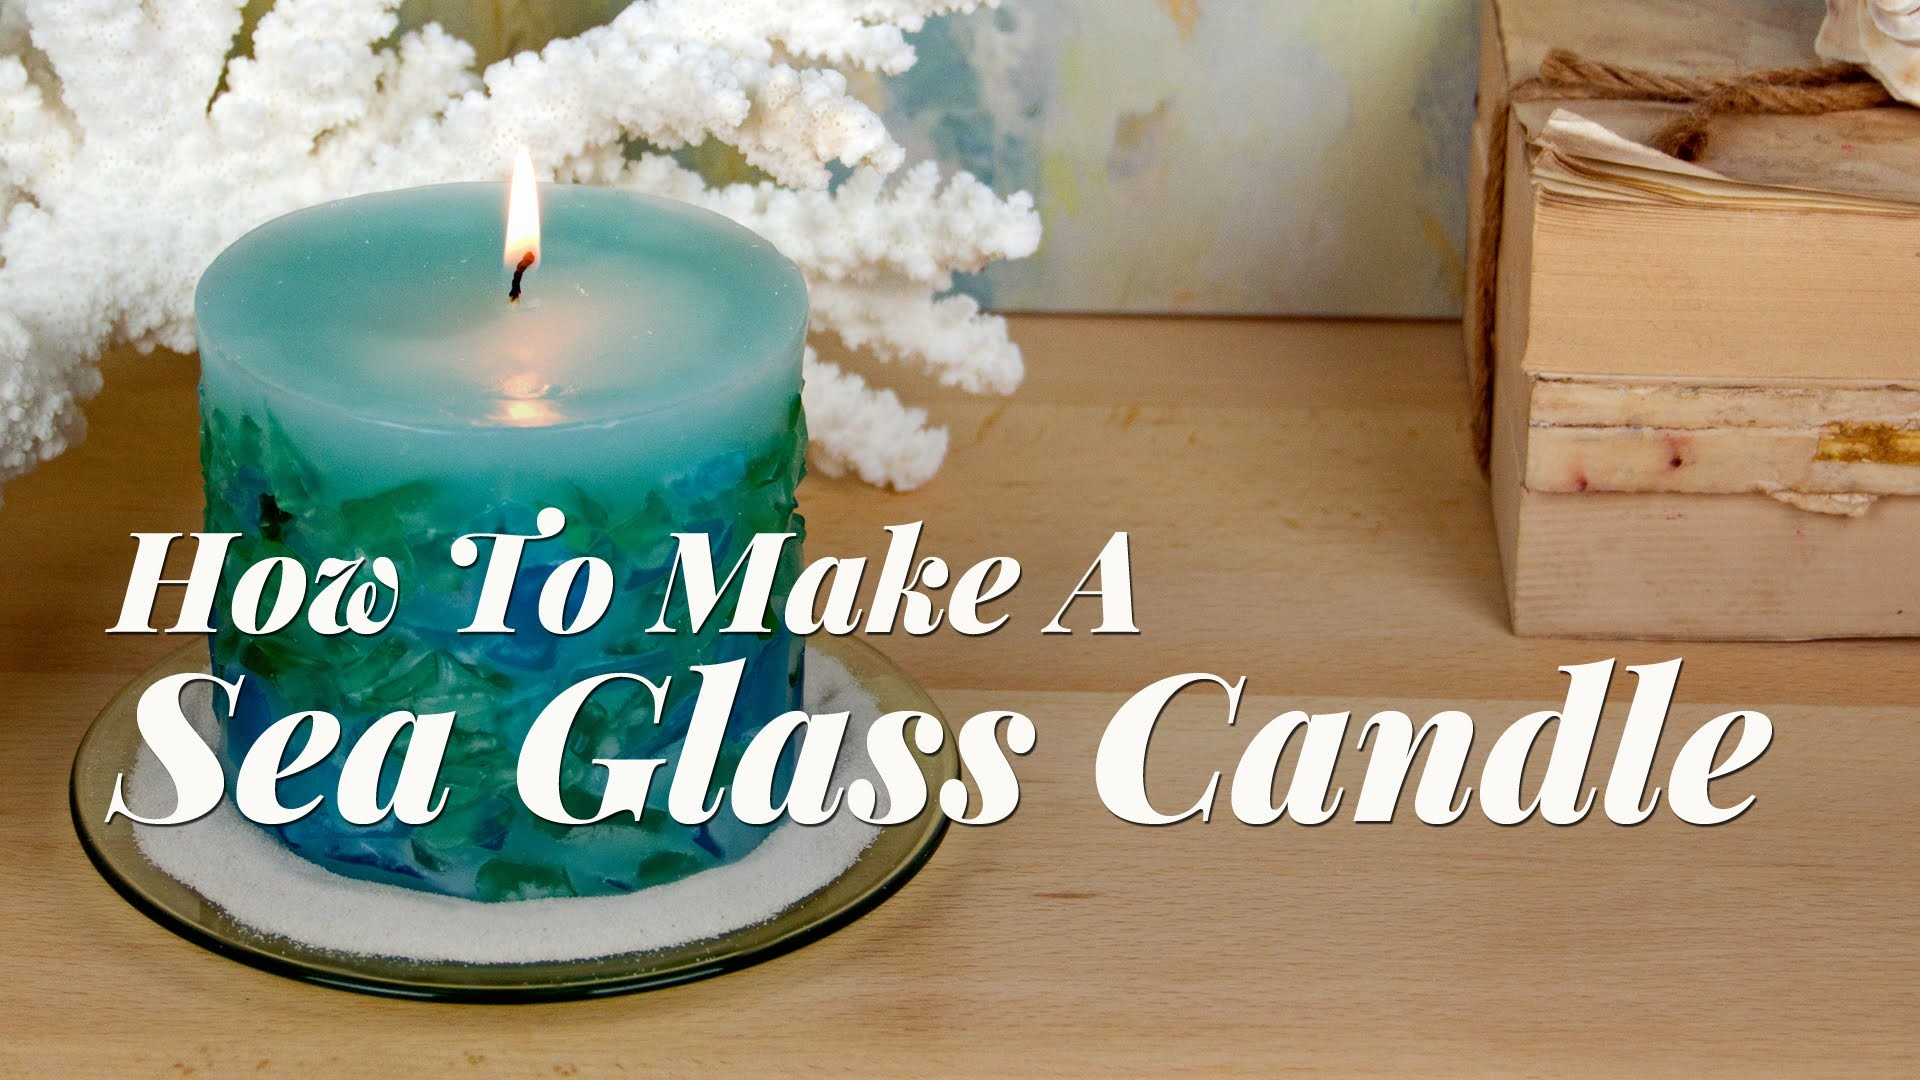 Candle Making Lessons: How To Make A Sea Glass Candle